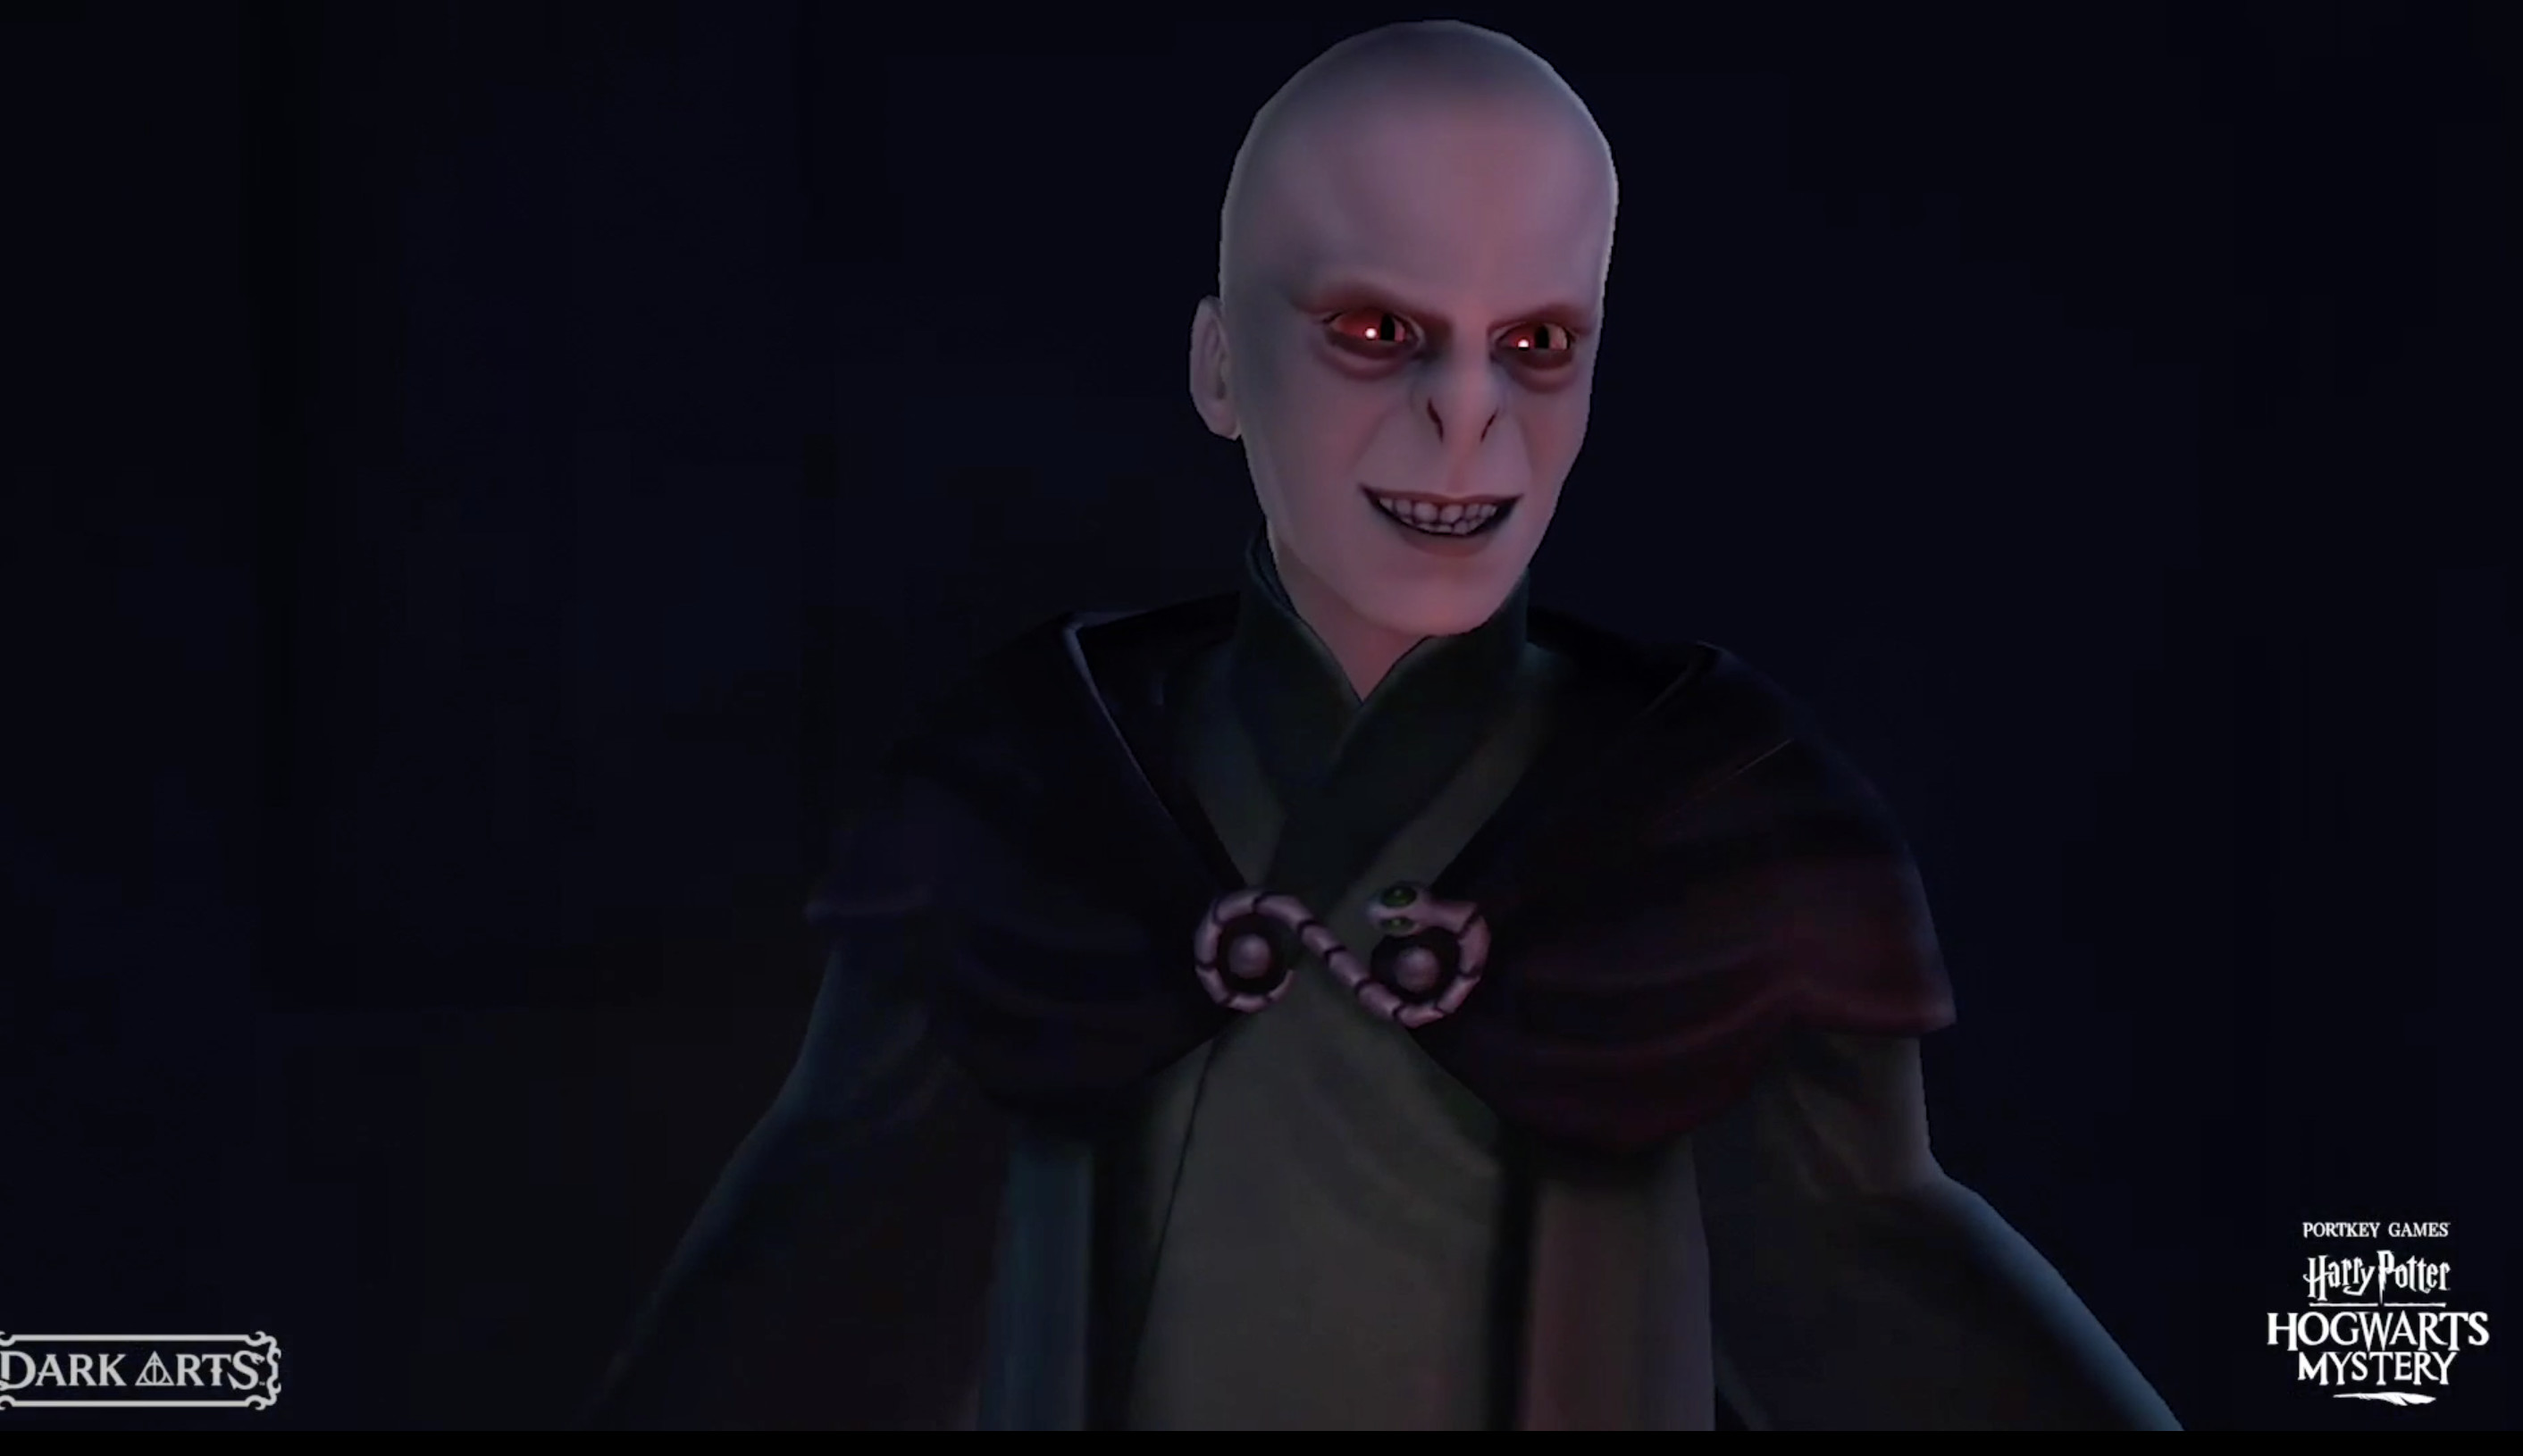 NEWS-harry-potter-hogwarts-mystery-celebrates-dark-arts-month-HERO